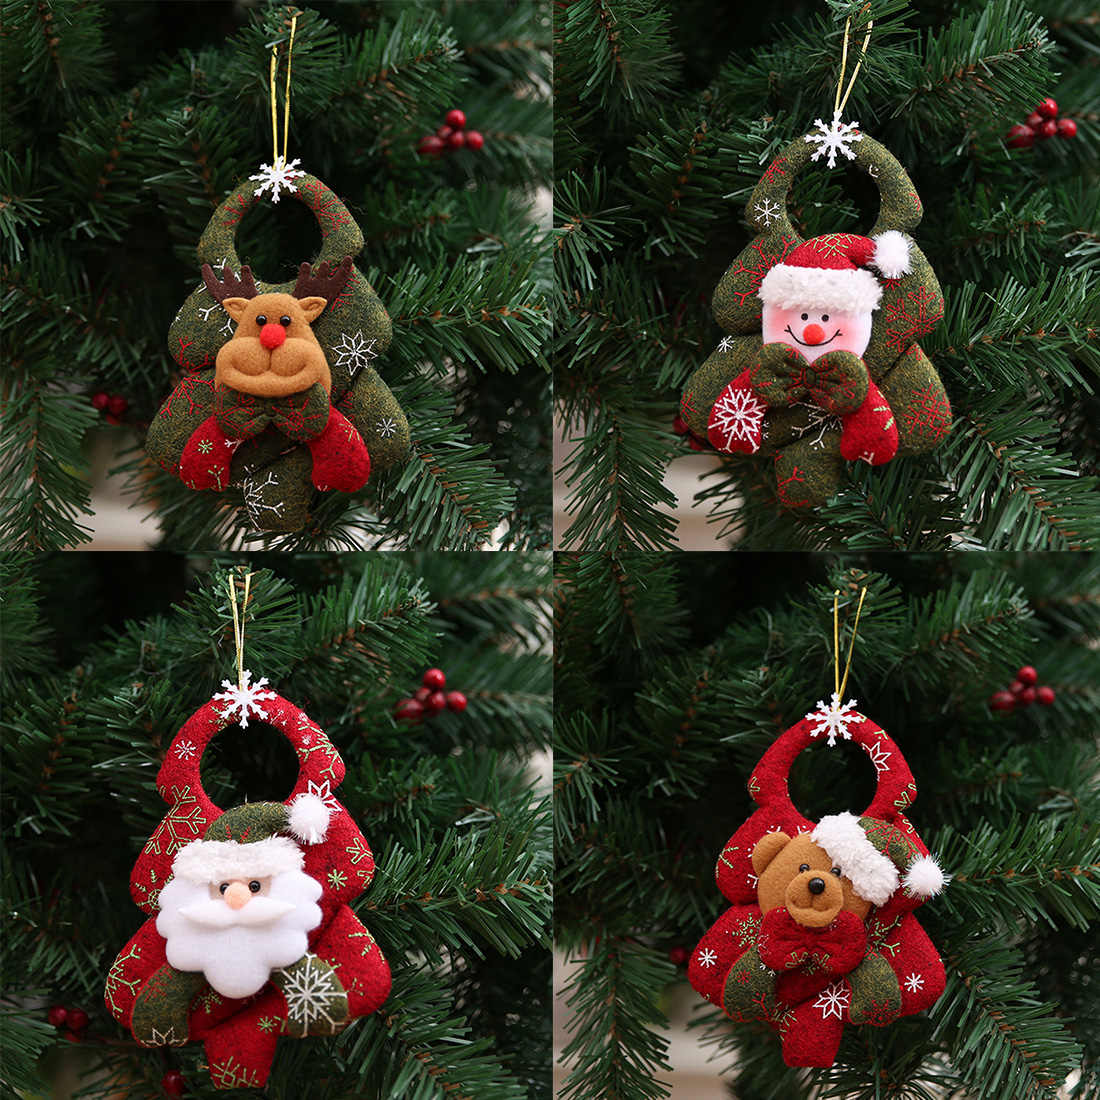 1pc Christmas Santa Claus Snowman Elk Doll Toy Christmas Tree Hanging Ornaments Decoration for New Year Gift Home Xmas Party